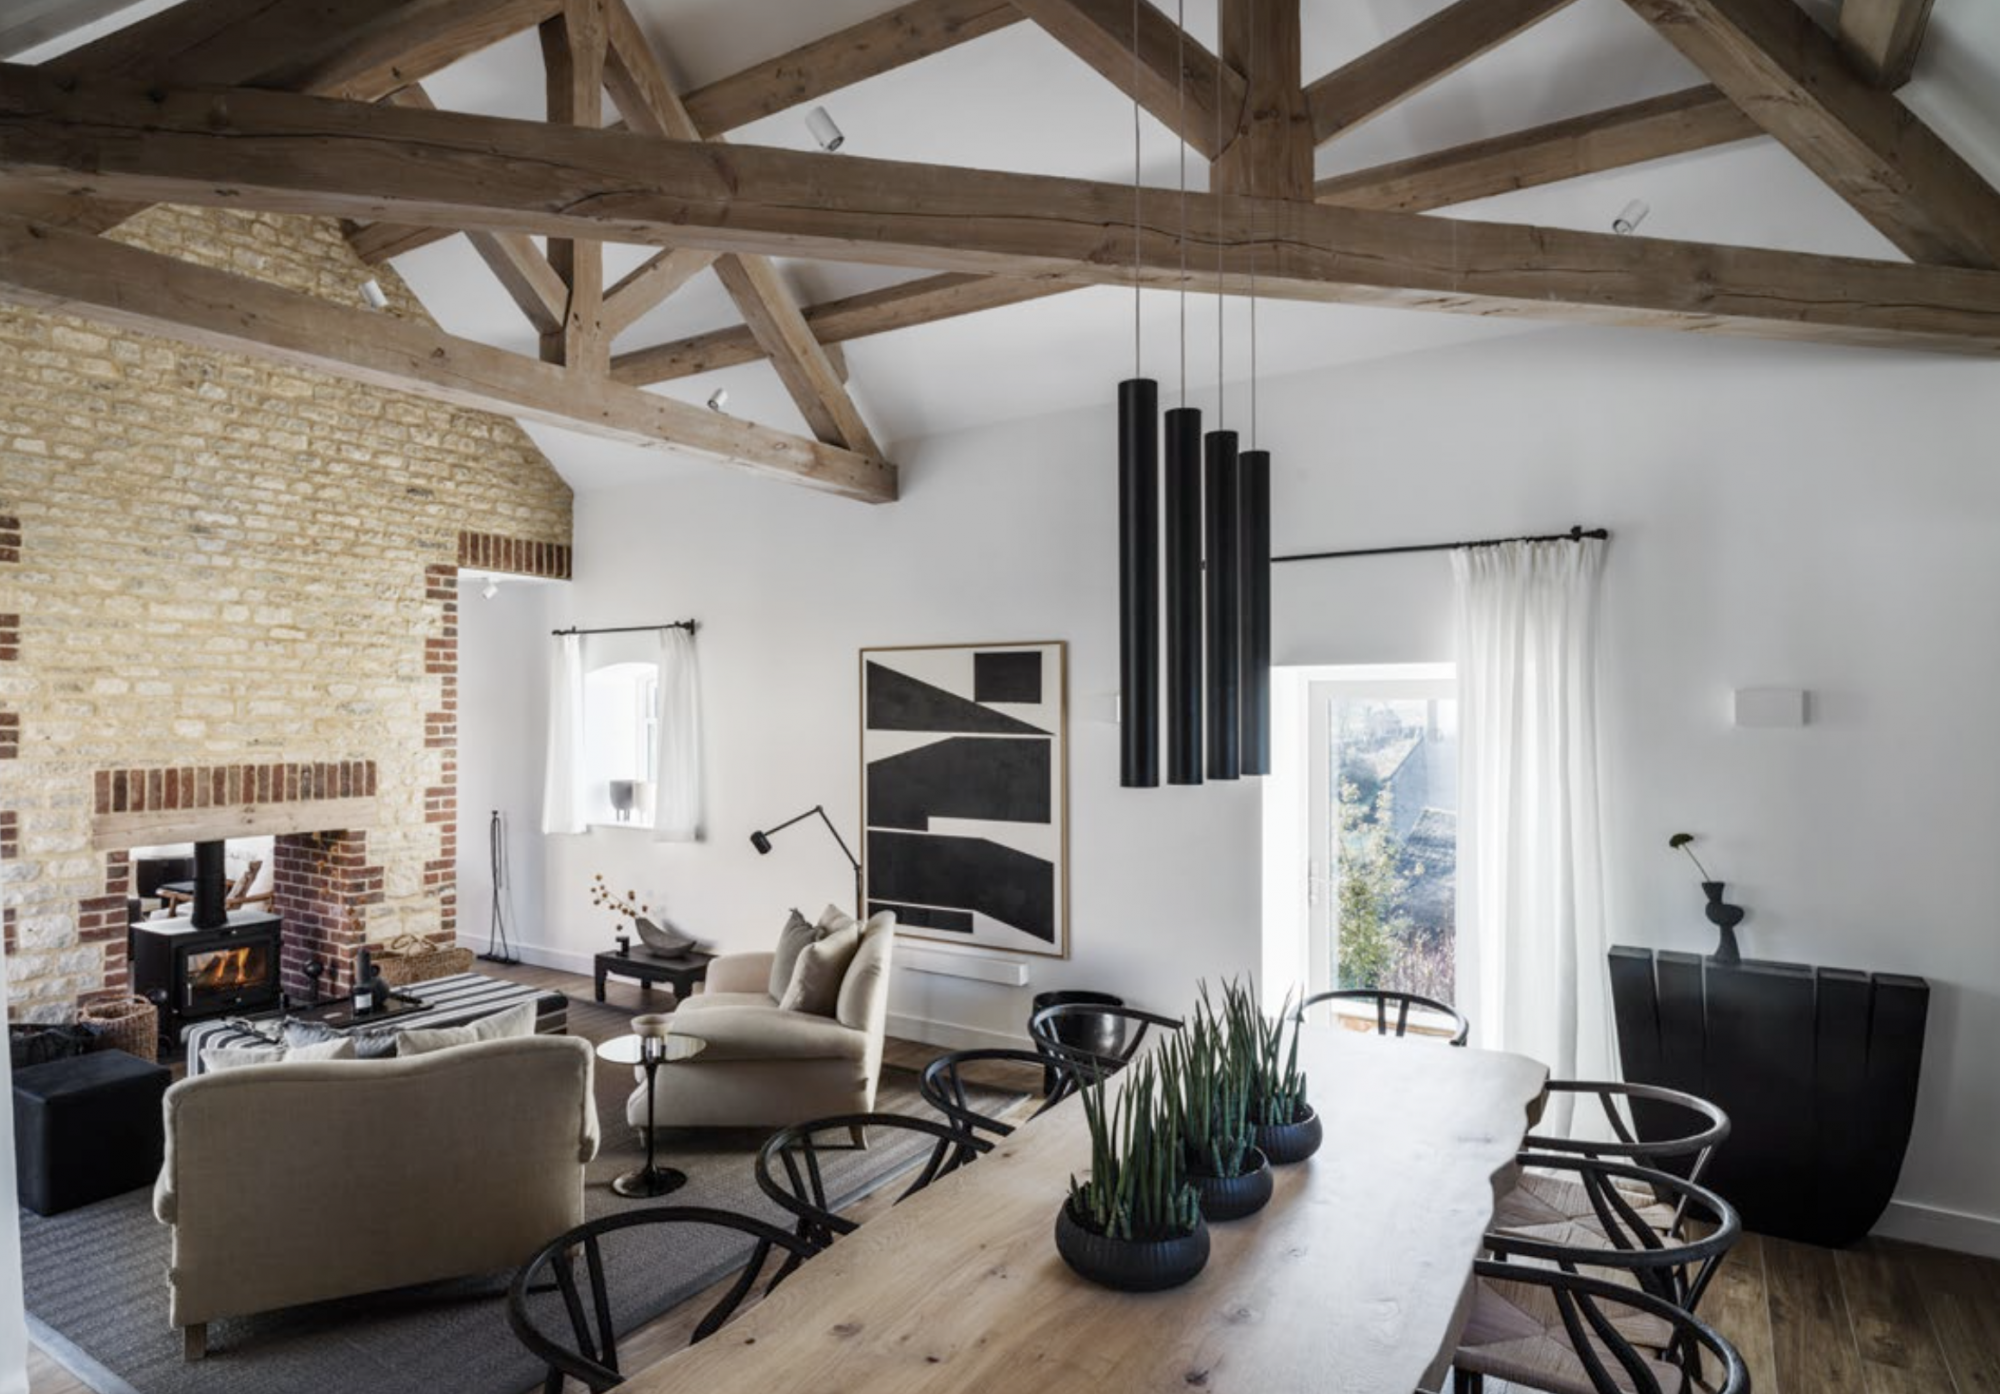 Home Tour: Kelly Hoppen's Country Home Is Rustic Yet Modern